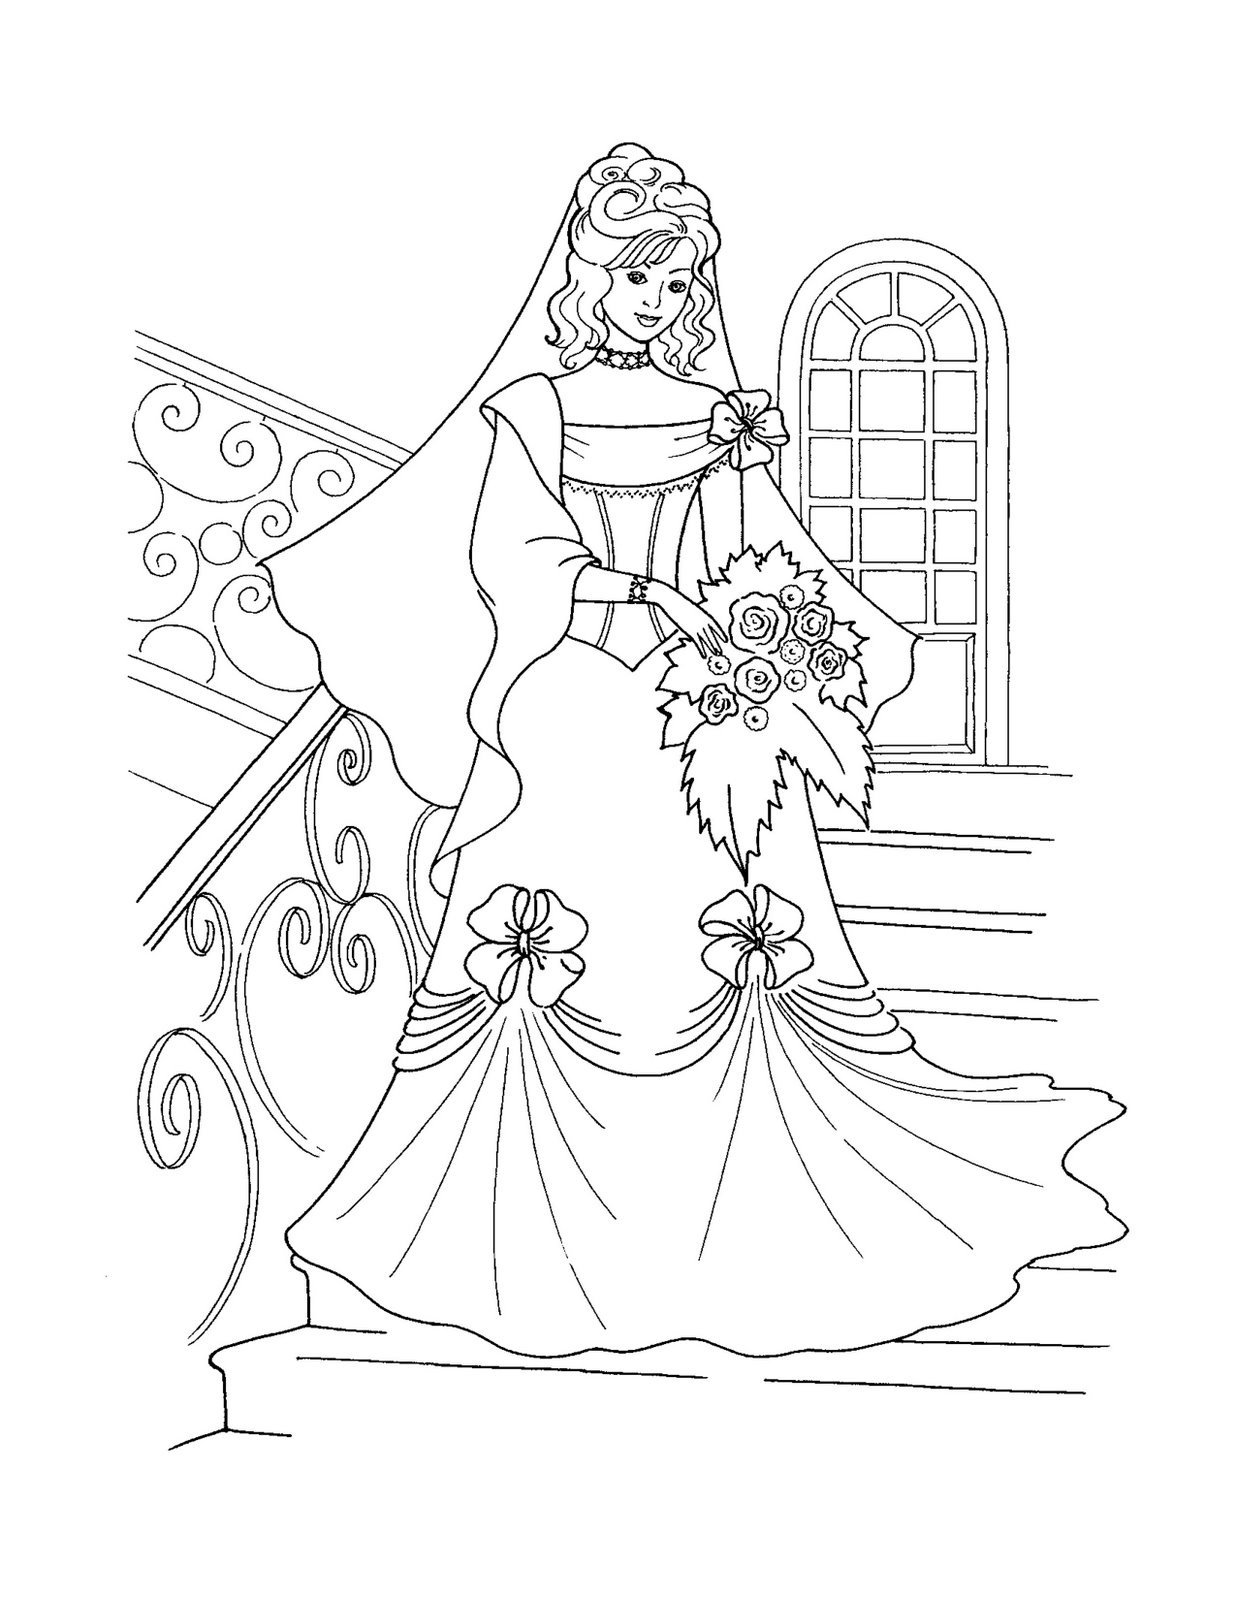 Princess Coloring Pages - Best Coloring Pages For Kids - Free Printable Princess Coloring Pages